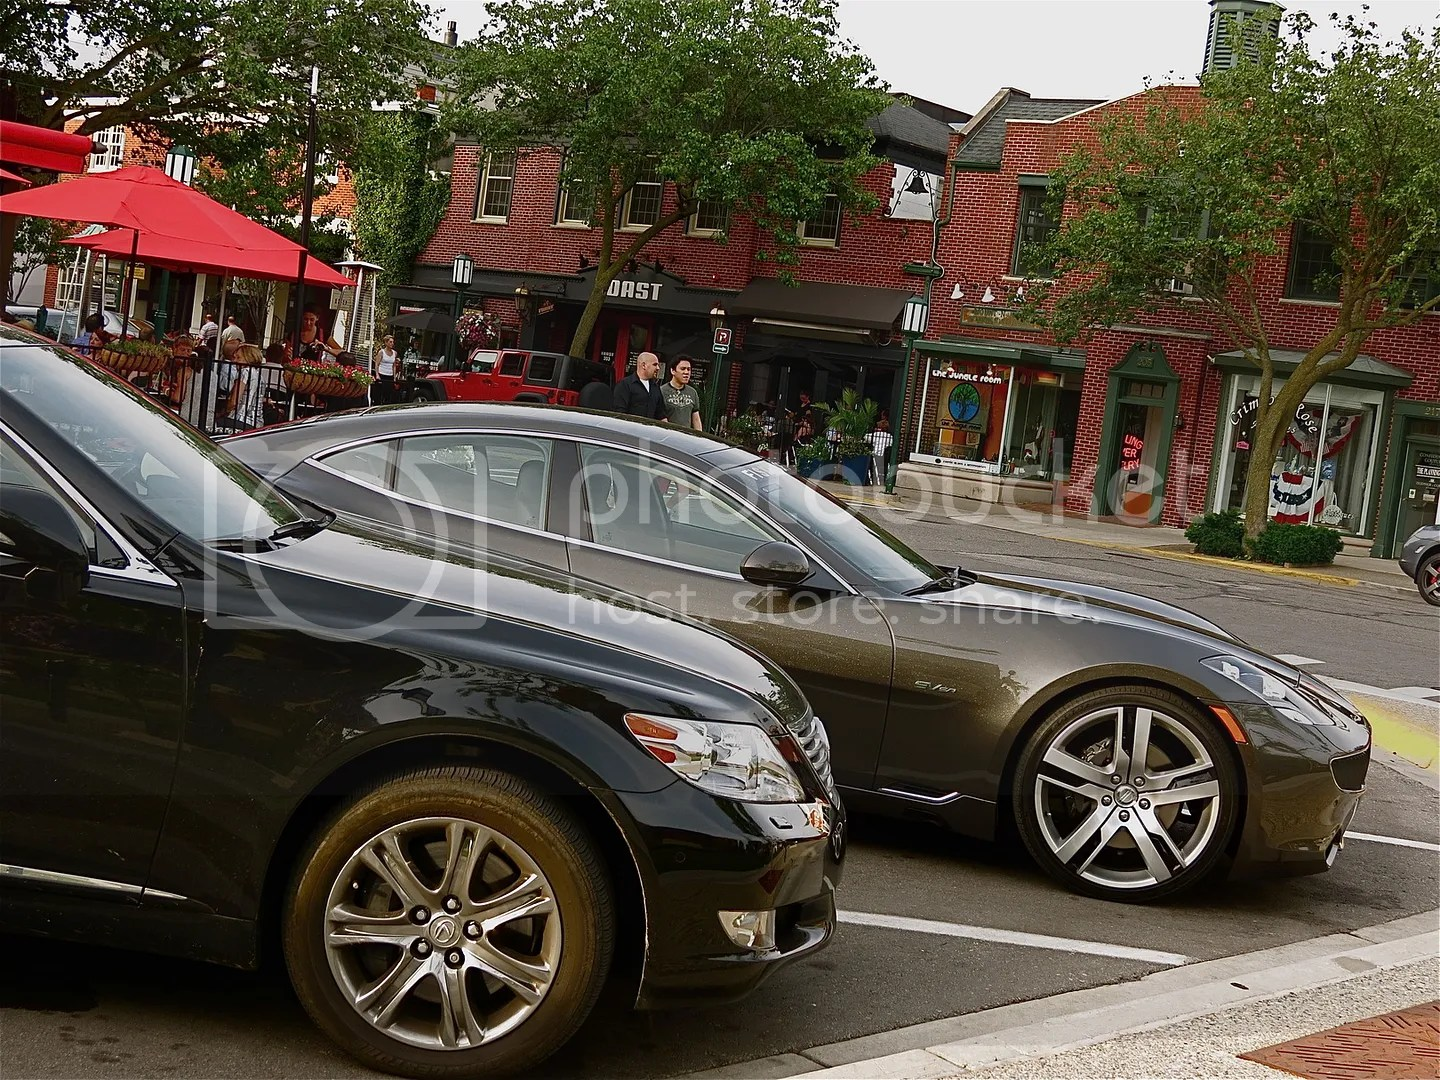 Fisker Karma compared to a Lexus LS